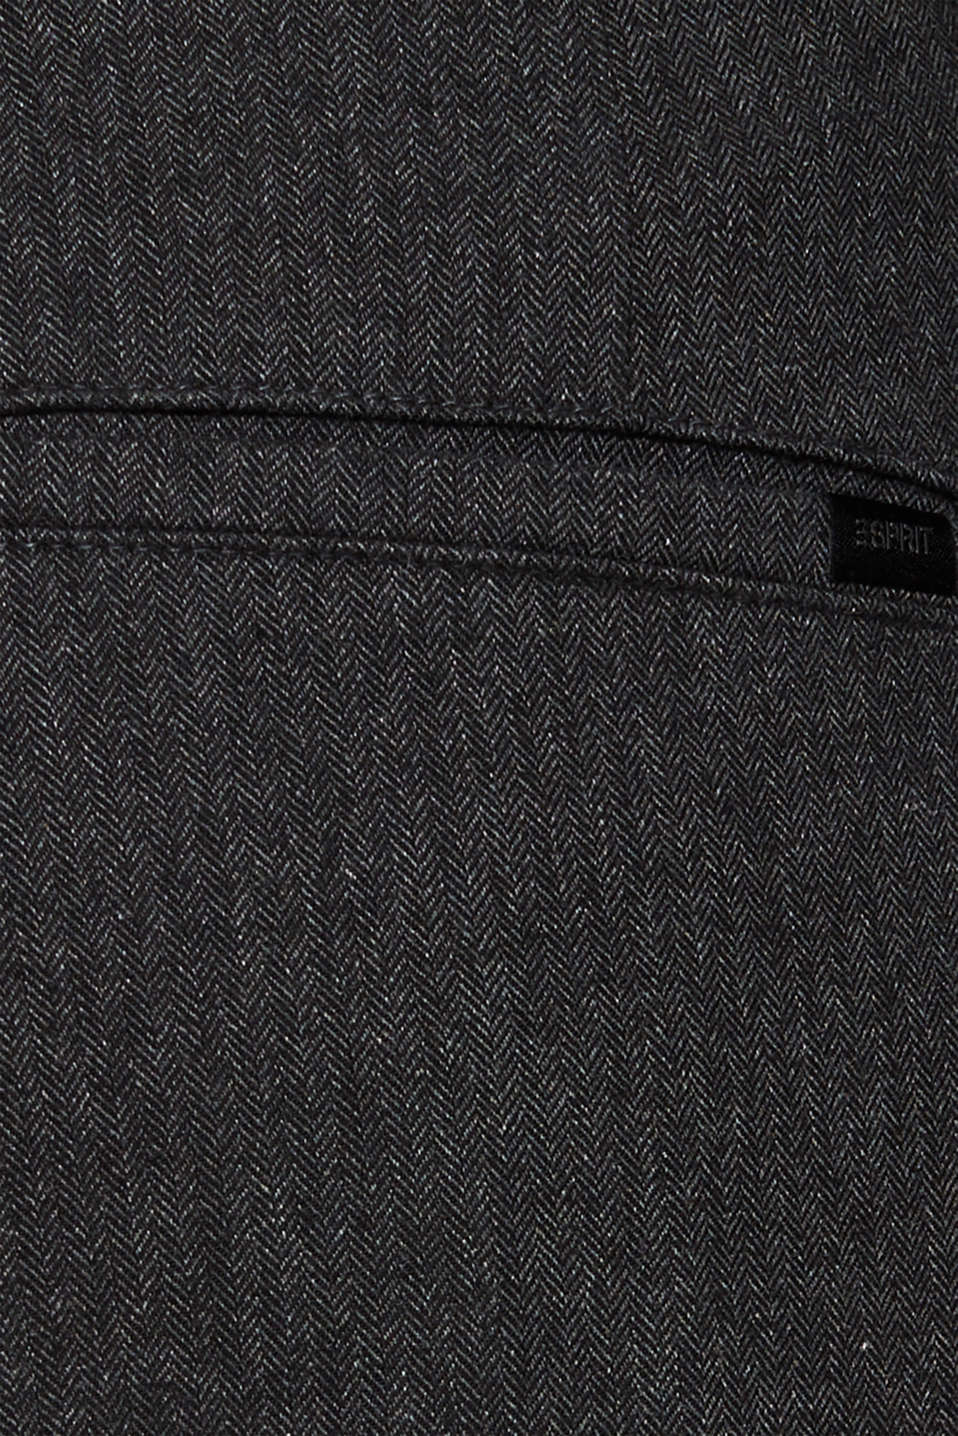 Stretch trousers with a herringbone pattern, ANTHRACITE, detail image number 4